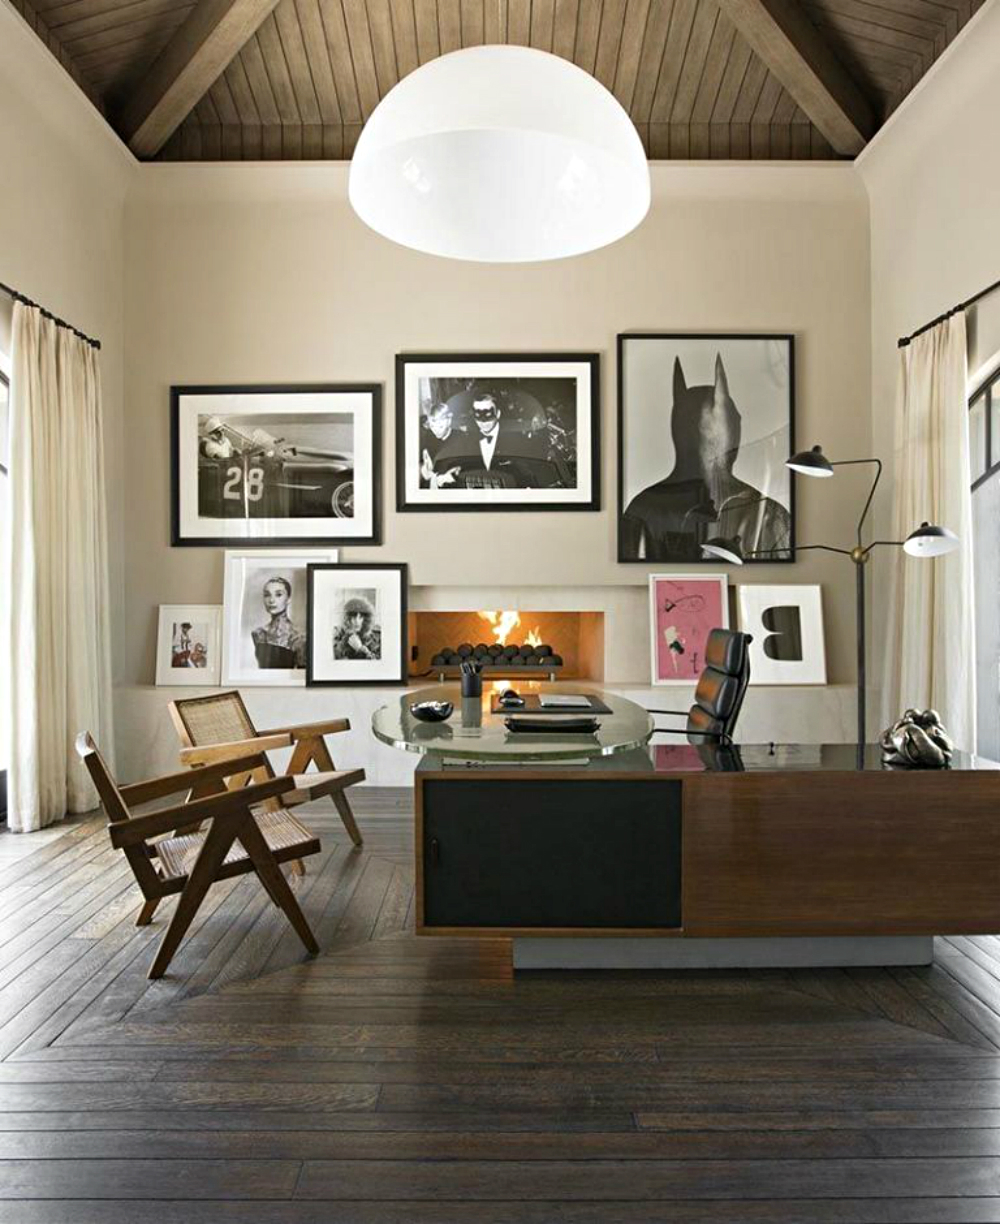 Bon Peek Inside Kourtney Kardashian Home Office Design In California Kourtney  Kardashian Home Office Peek Inside Kourtney